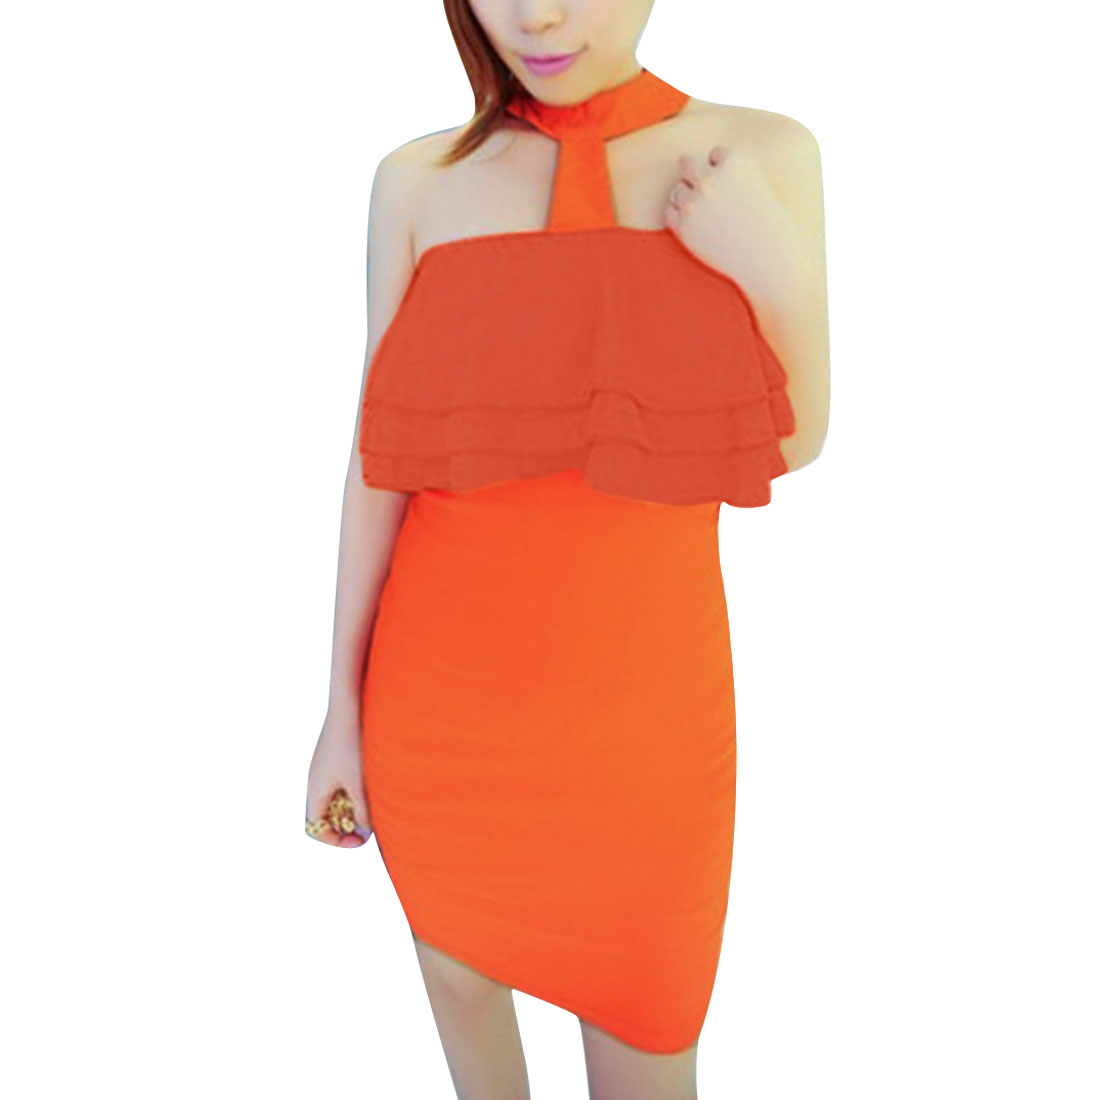 Women Zip Up Back Sleeveless Flouncing Detail Dress Orange XS